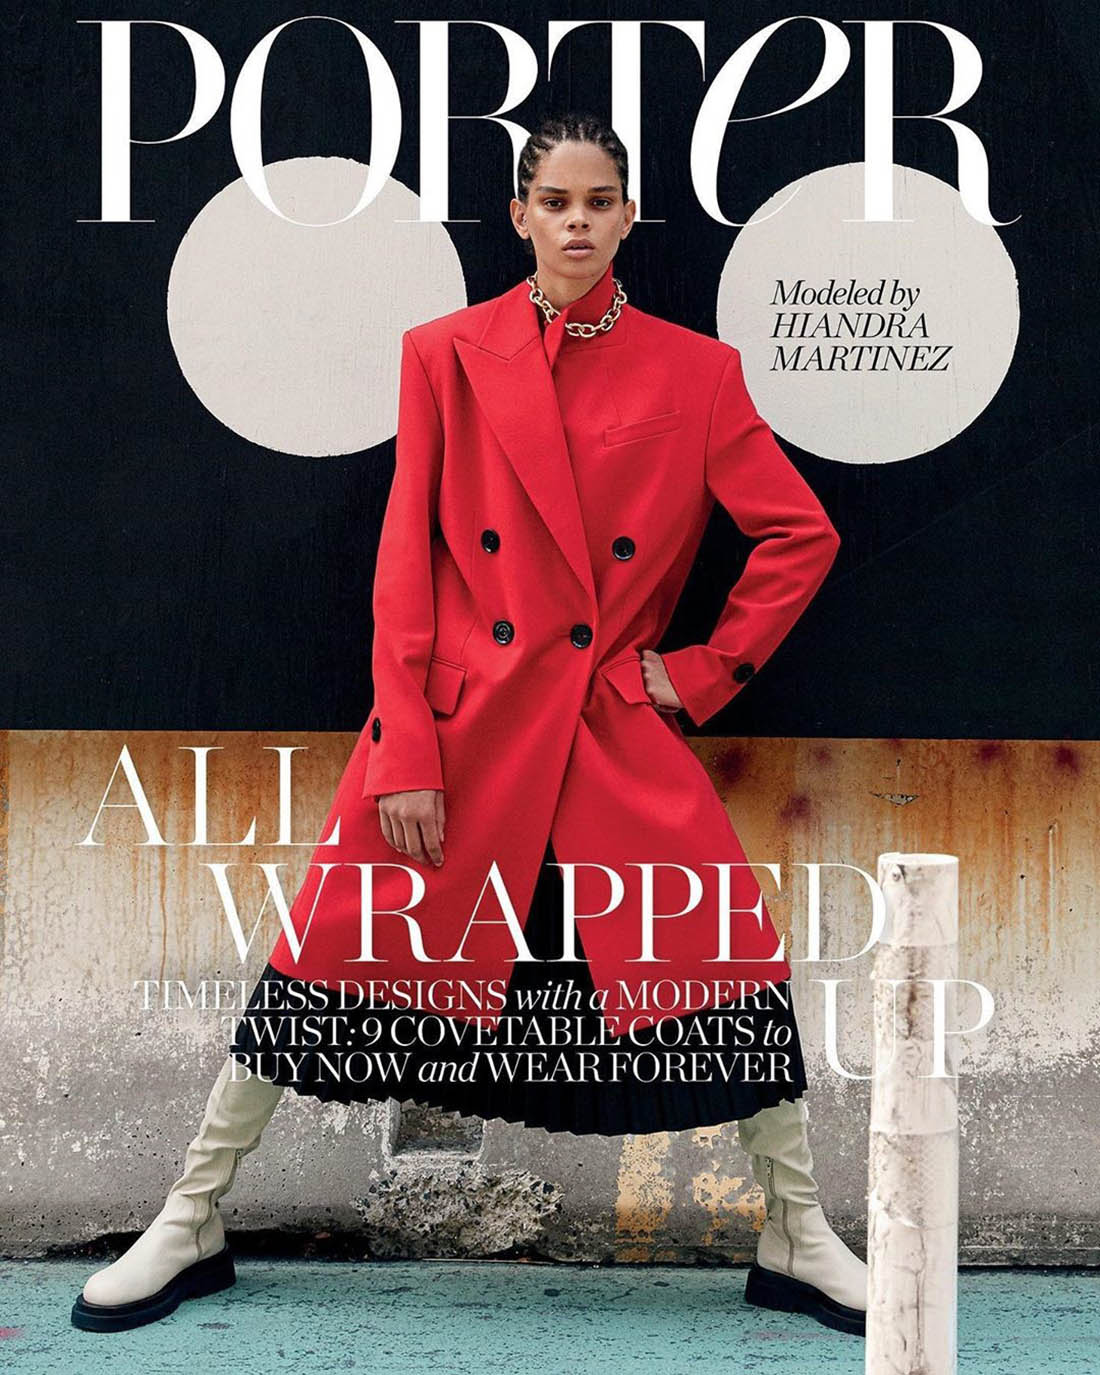 Hiandra Martinez covers Porter Magazine September 7th, 2020 by Yelena Yemchuk